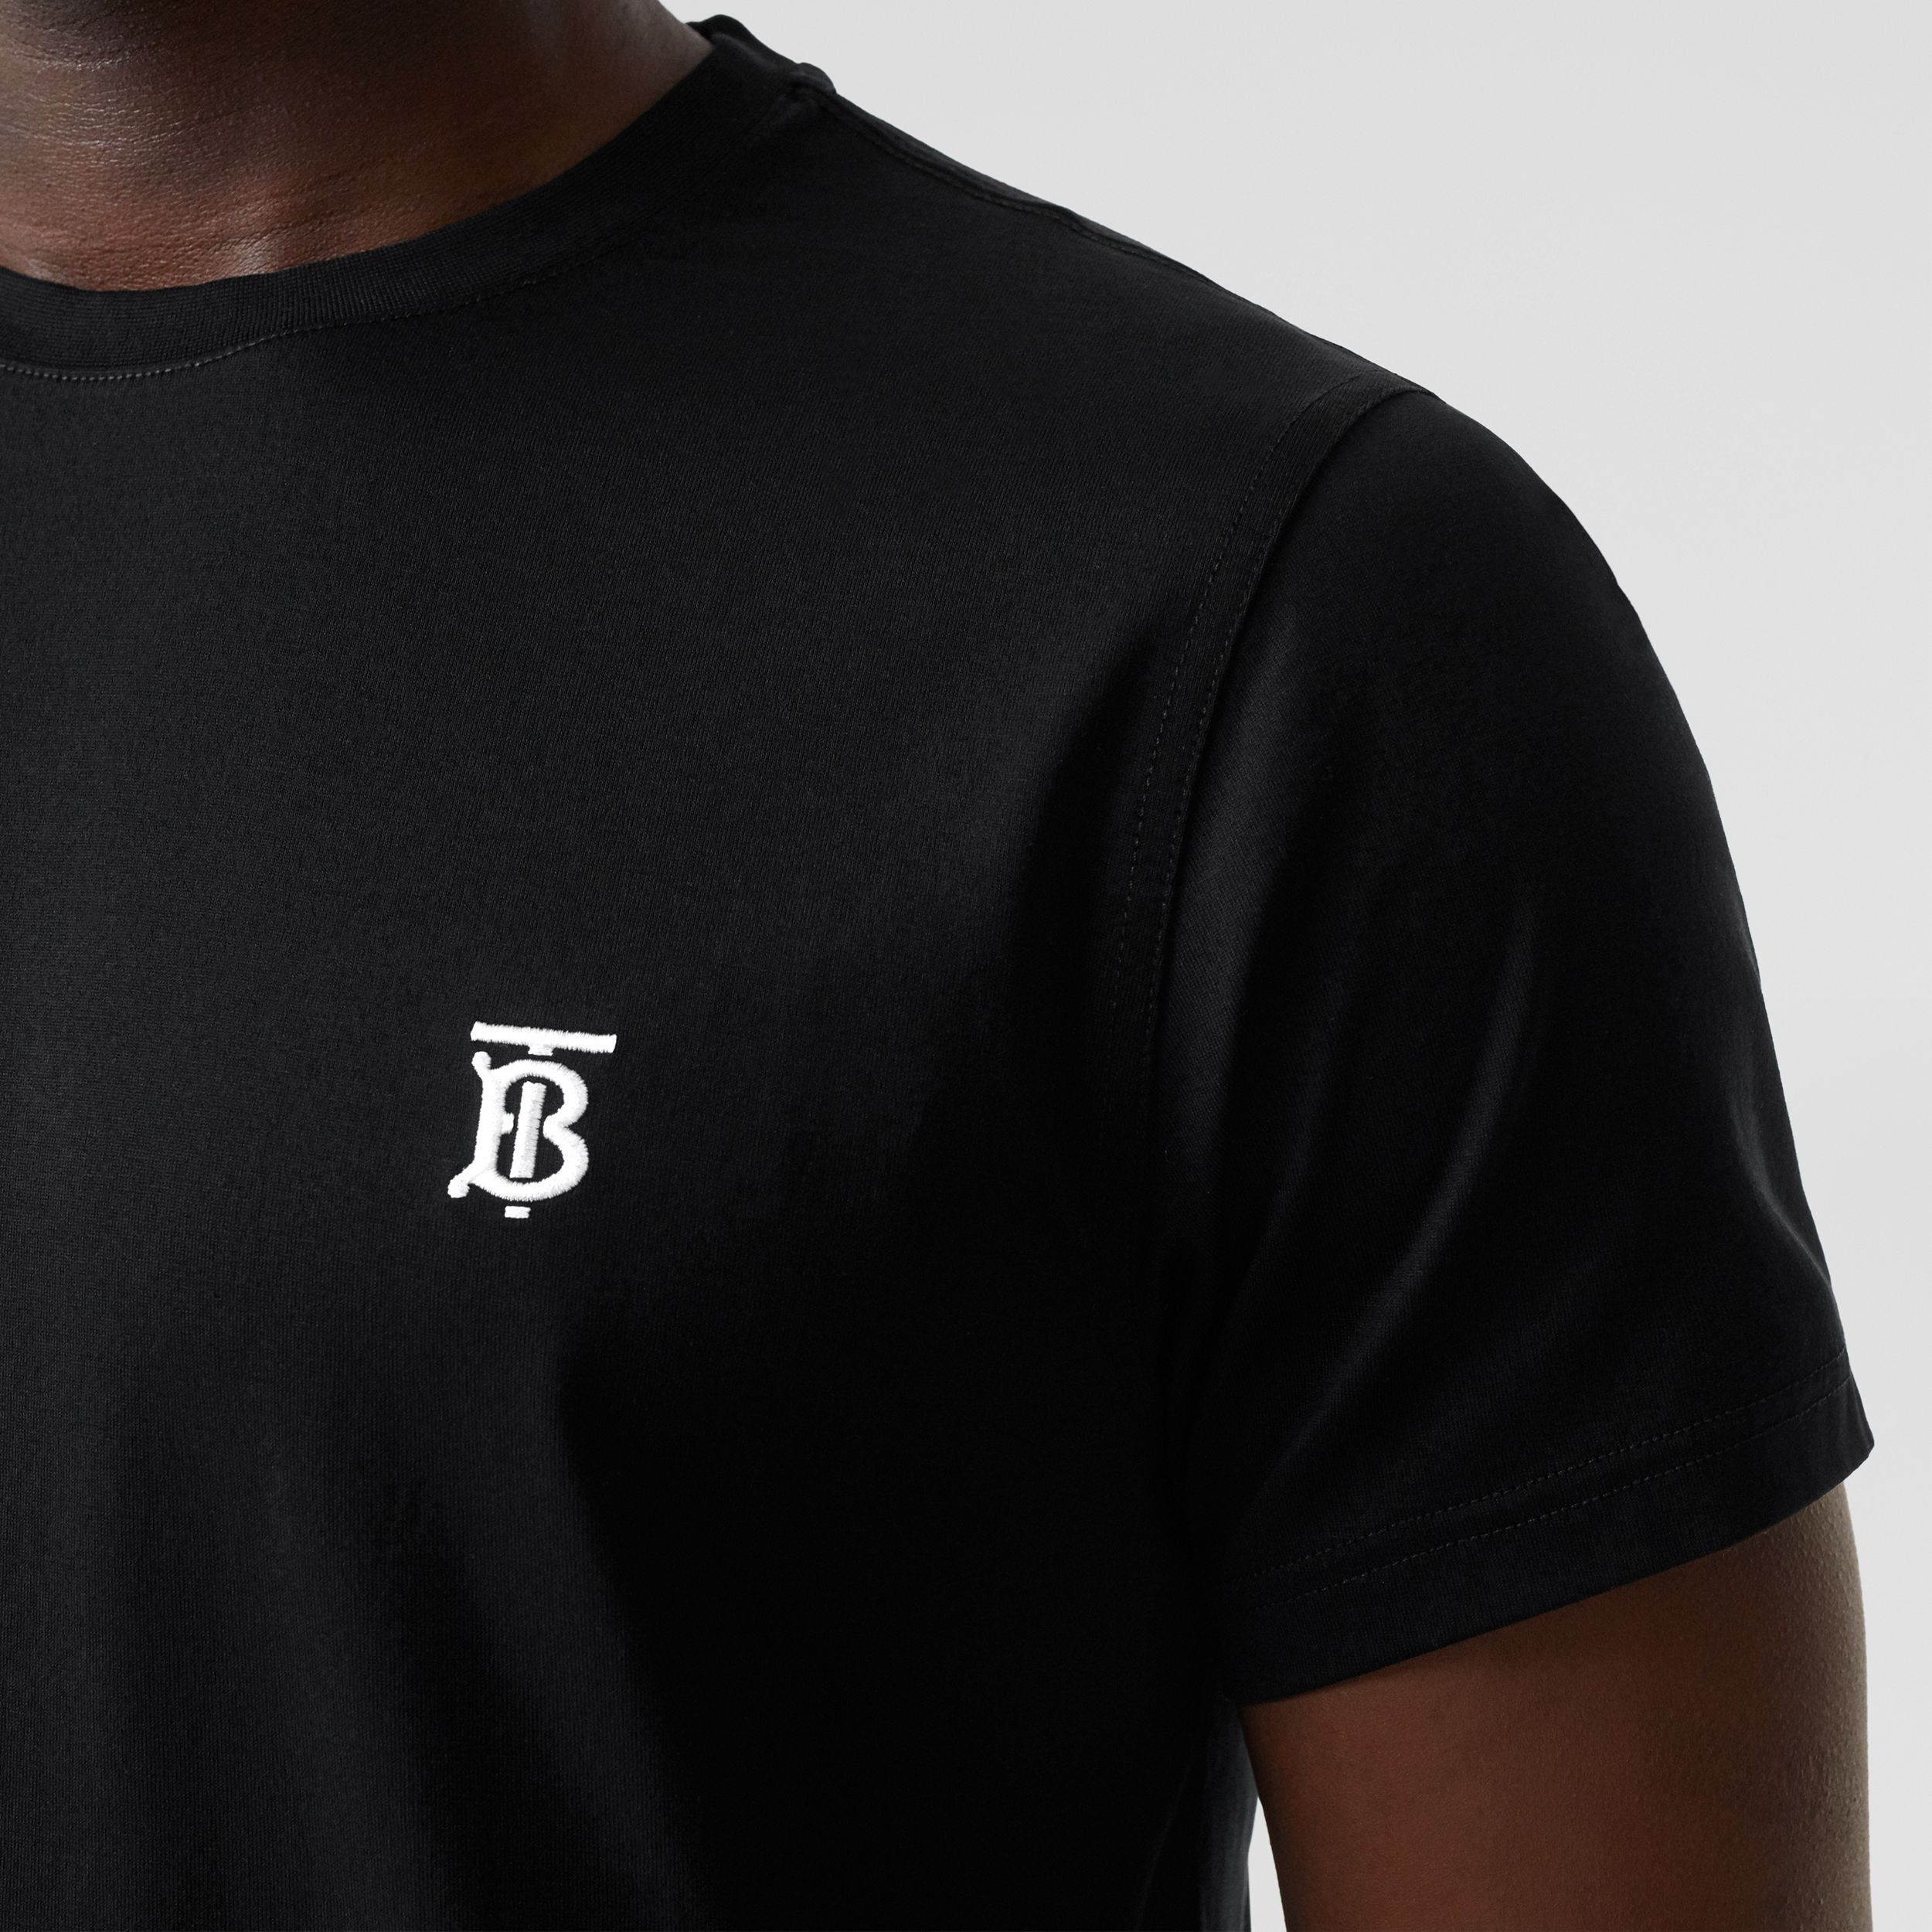 Monogram Motif Cotton T-shirt in Black - Men | Burberry - 2